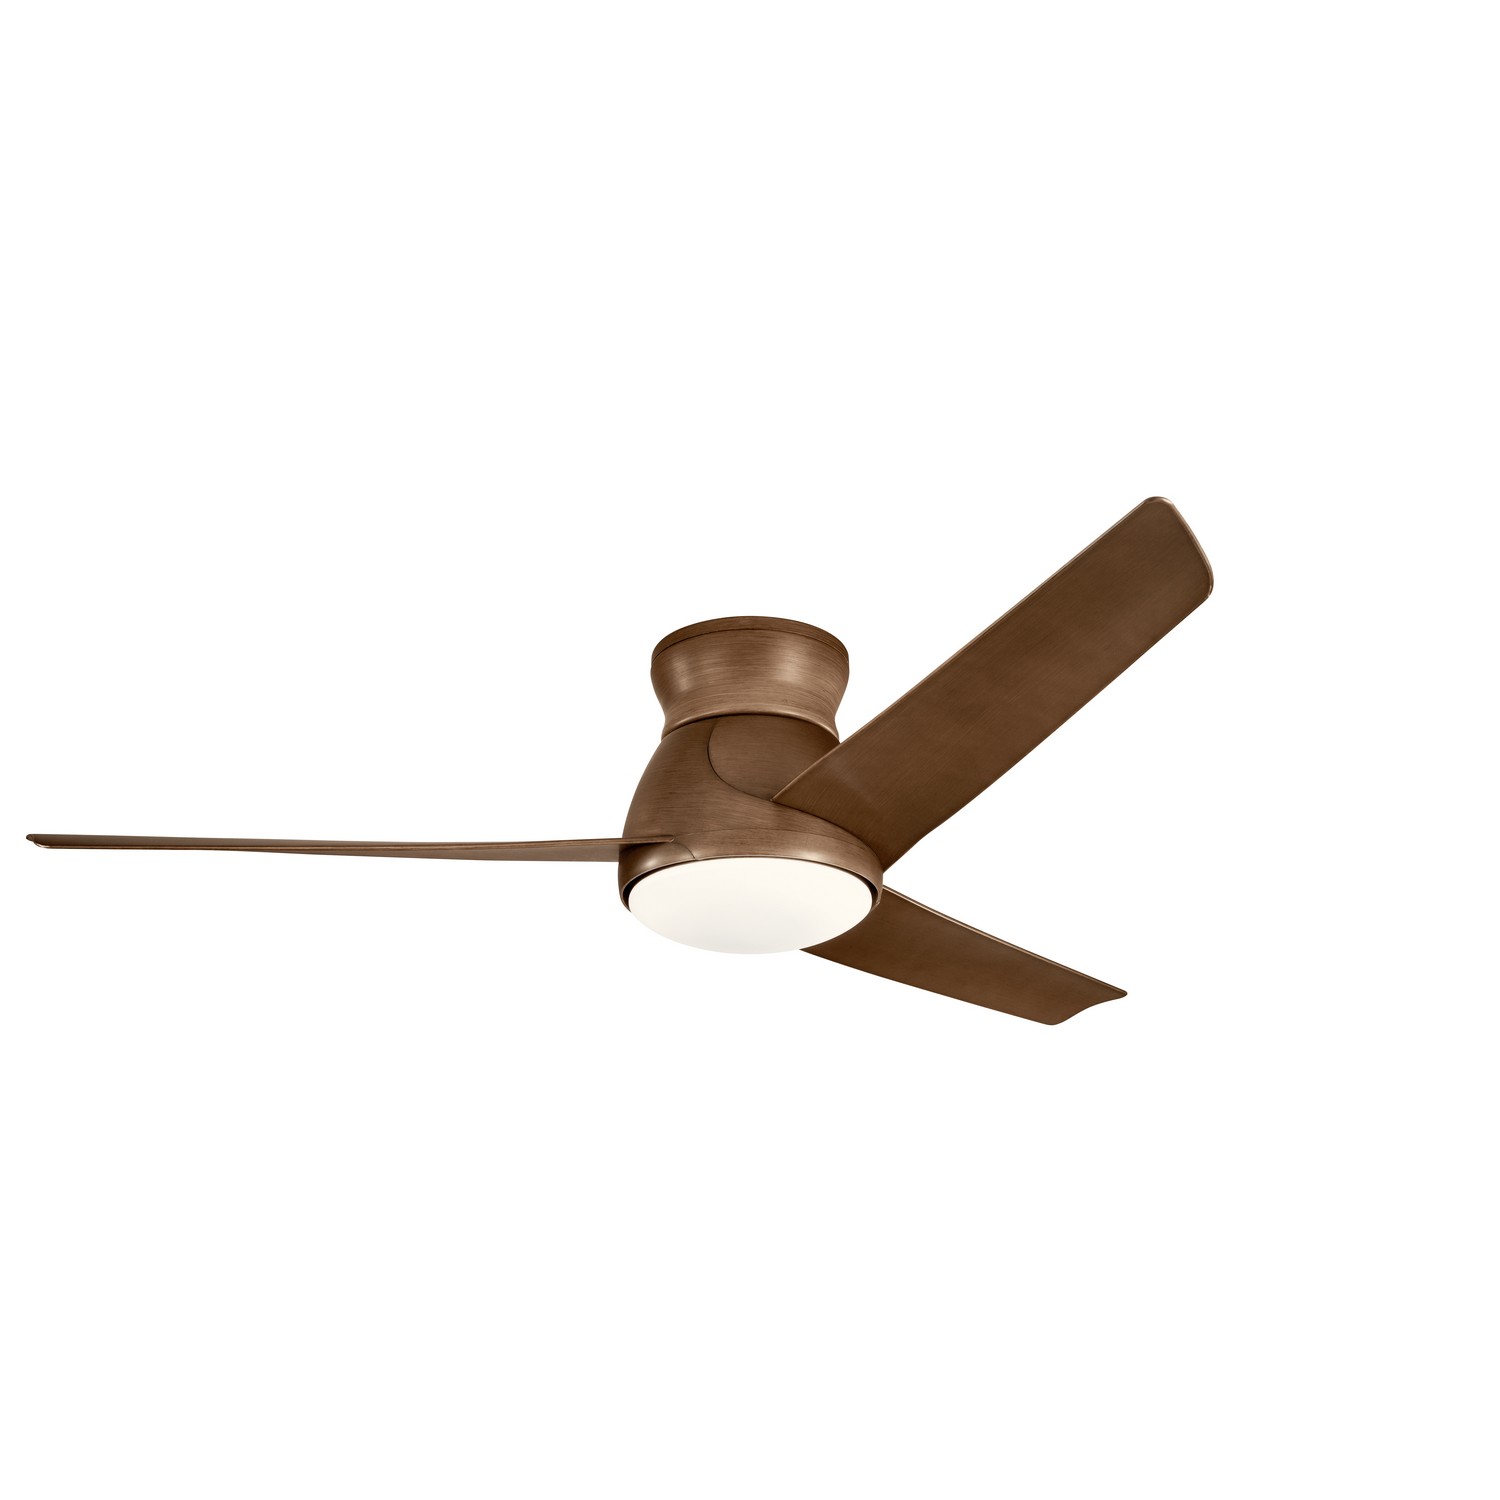 60 inchCeiling Fan from the Eris collection by Kichler 310160WN